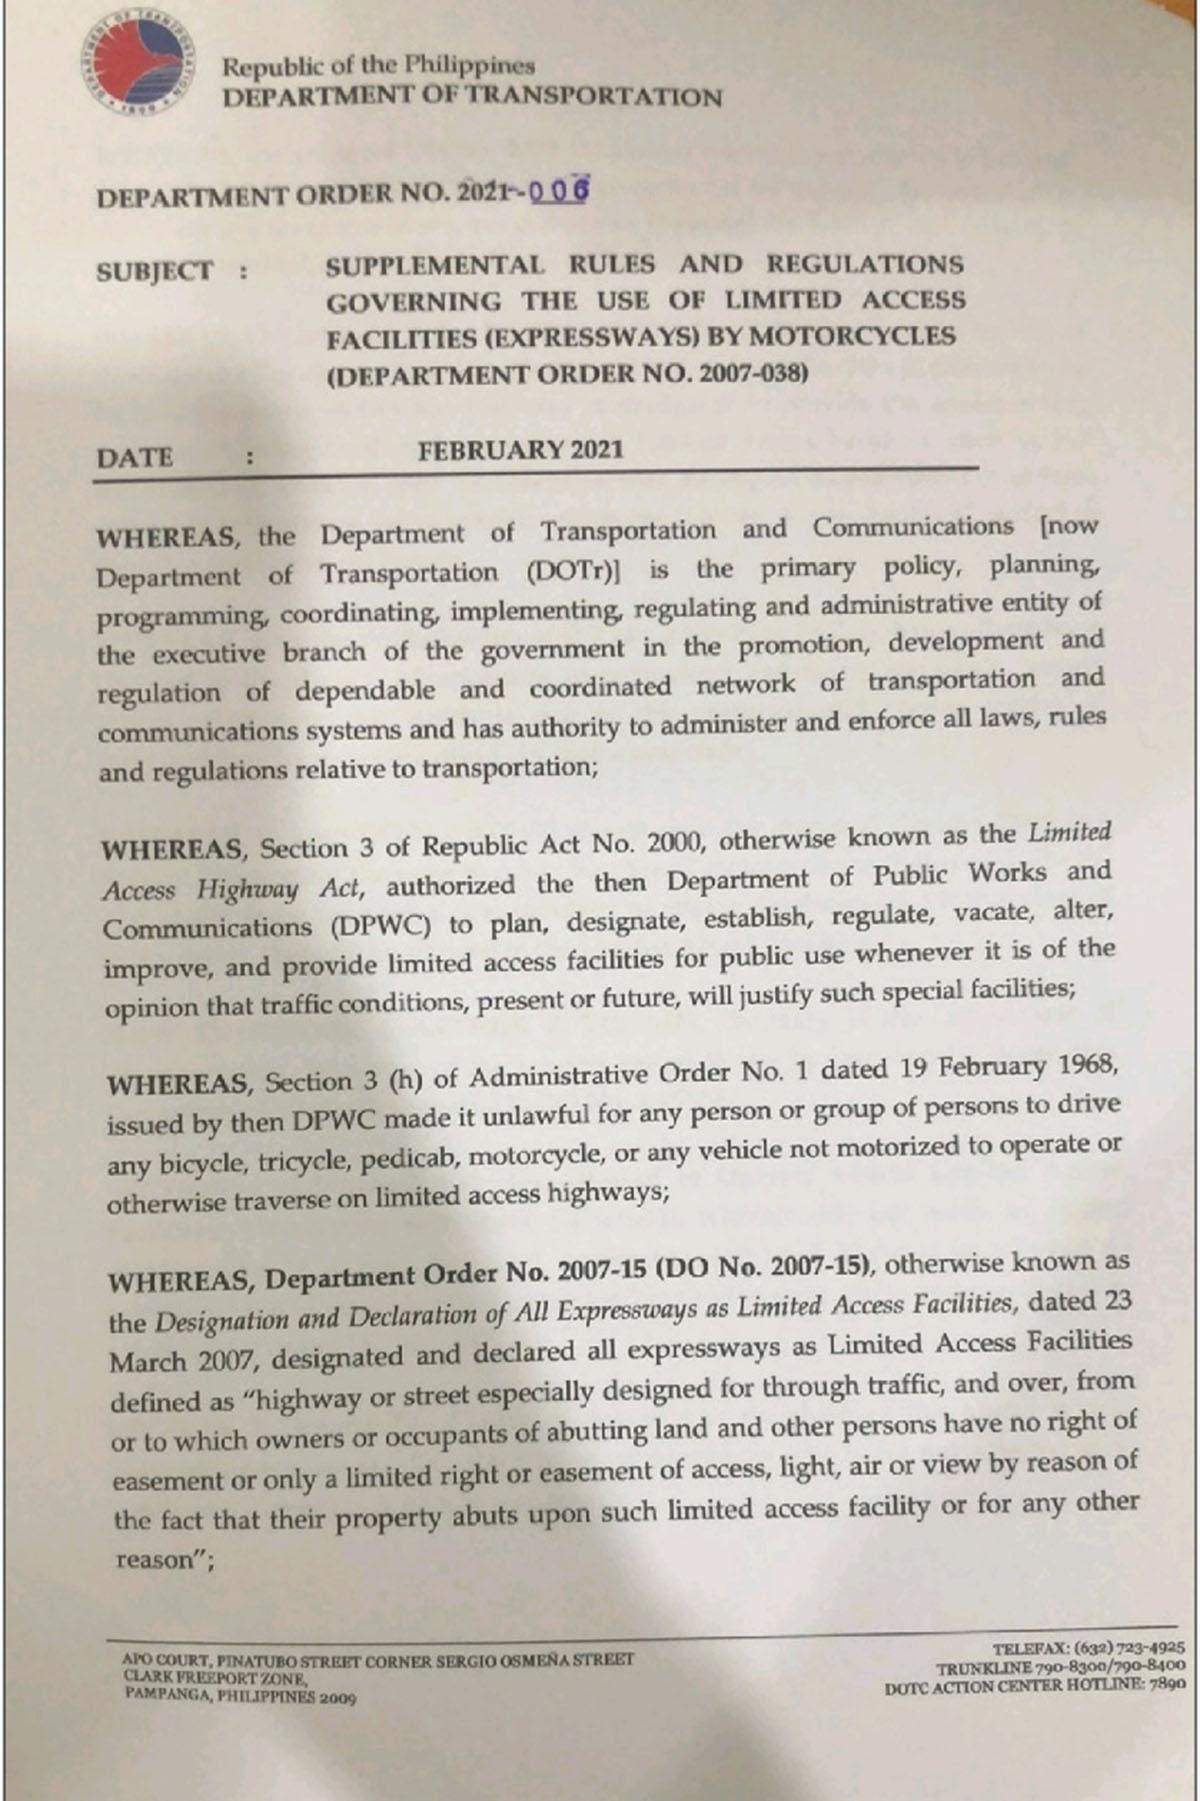 Supplemental Rules and Regulations Governing the Use of Limited Access Facilities (expressways) by Motorcycles